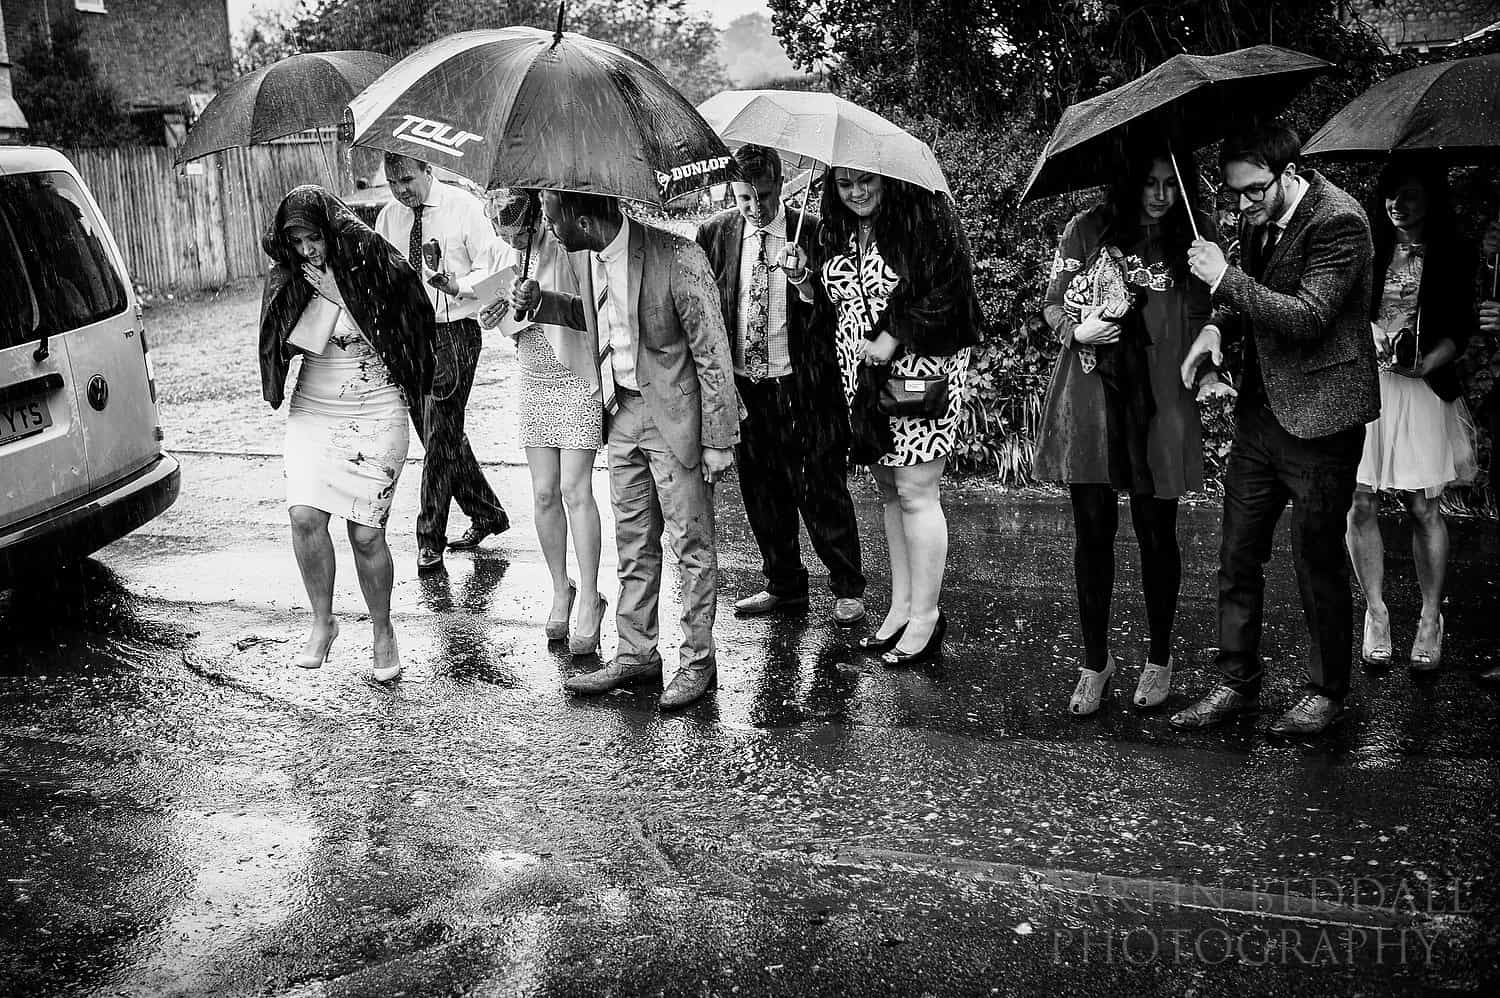 Wedding guests encounter a big rain puddle